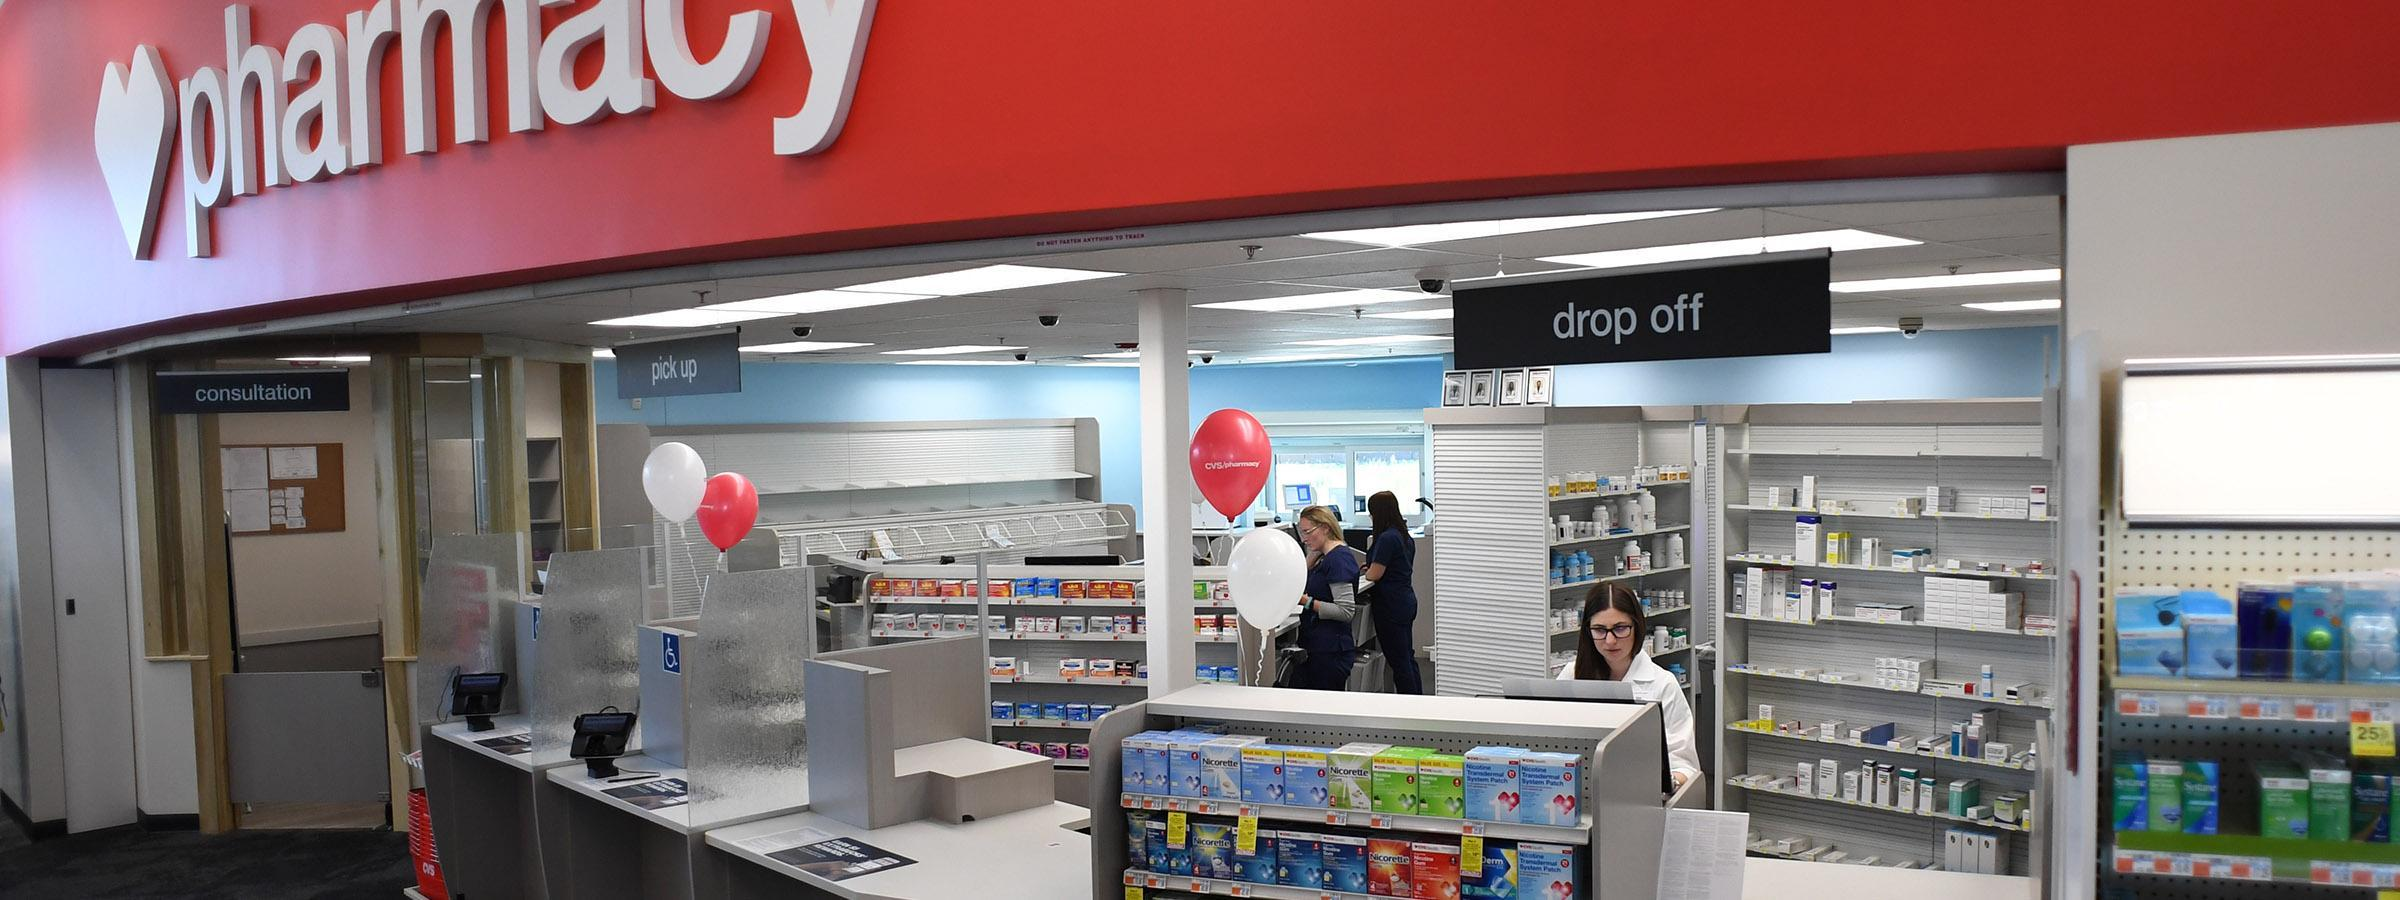 Clinical pharmacists storefront.